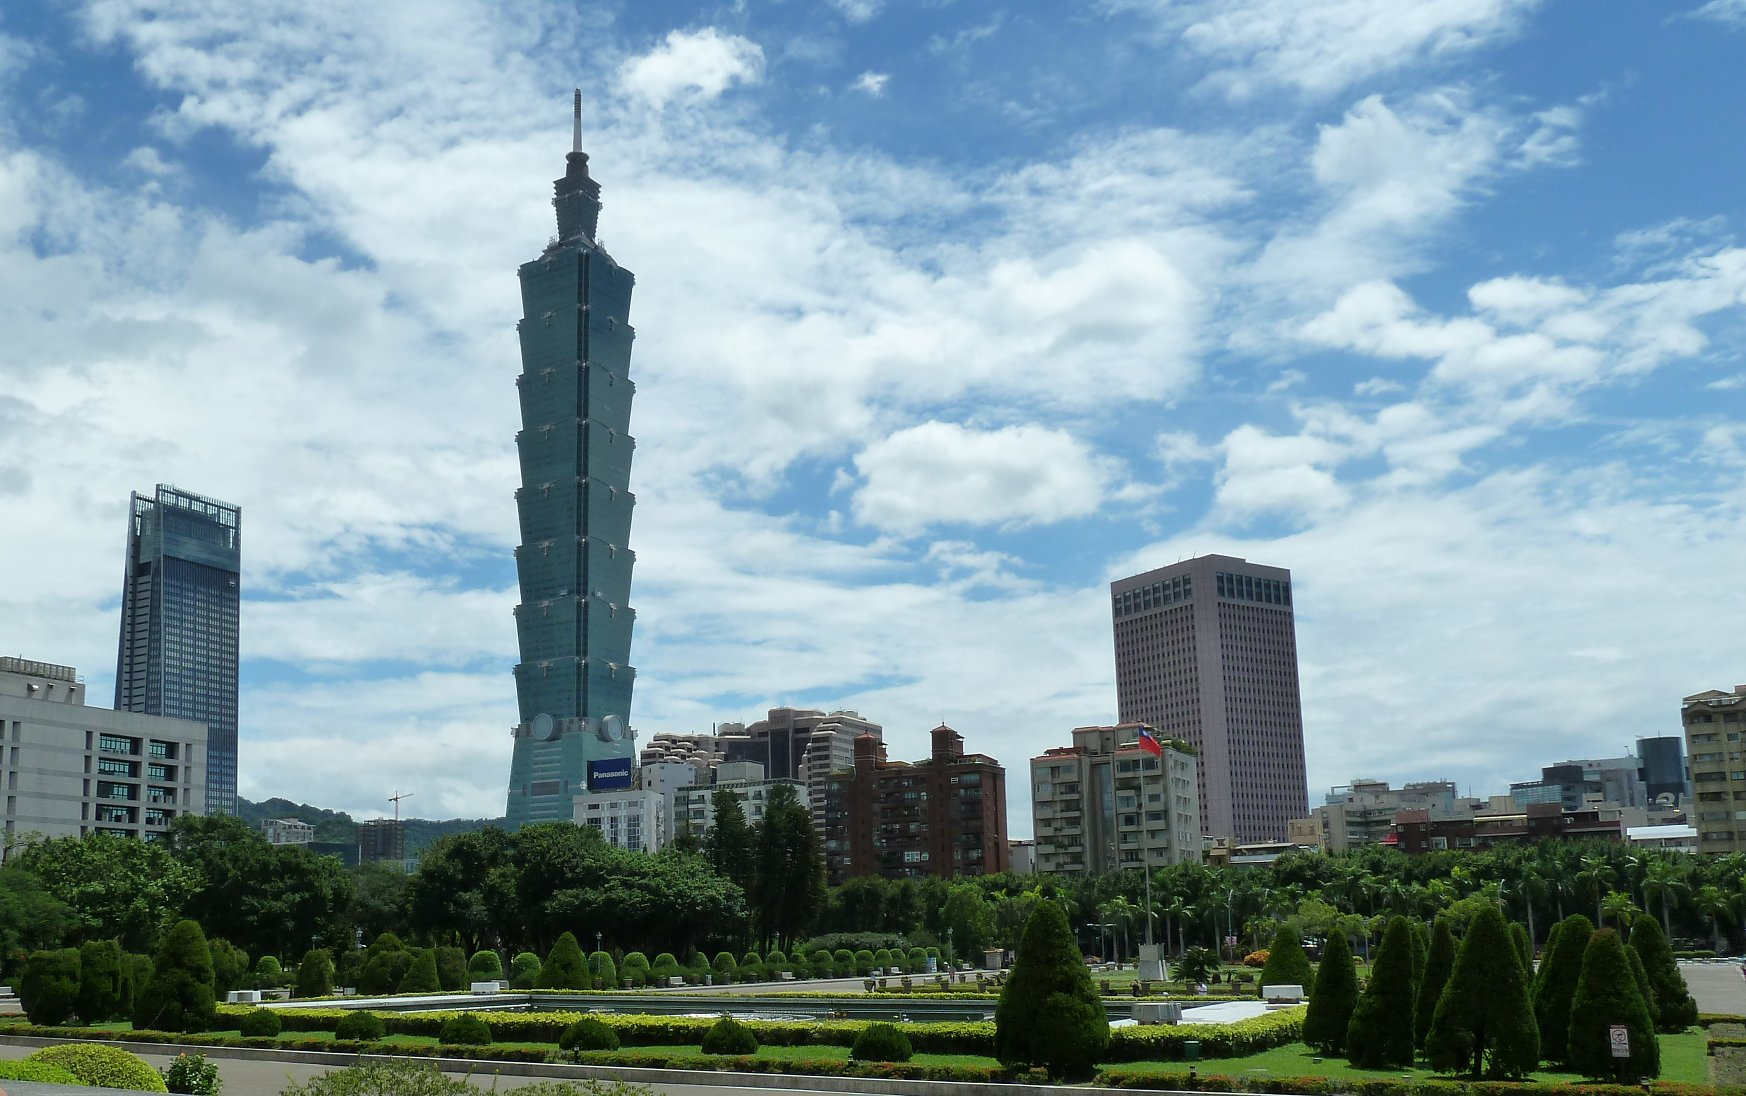 The                                                               Taipei                                                               101                                                               tower                                                               looms                                                               over a                                                               beautiful                                                               garden